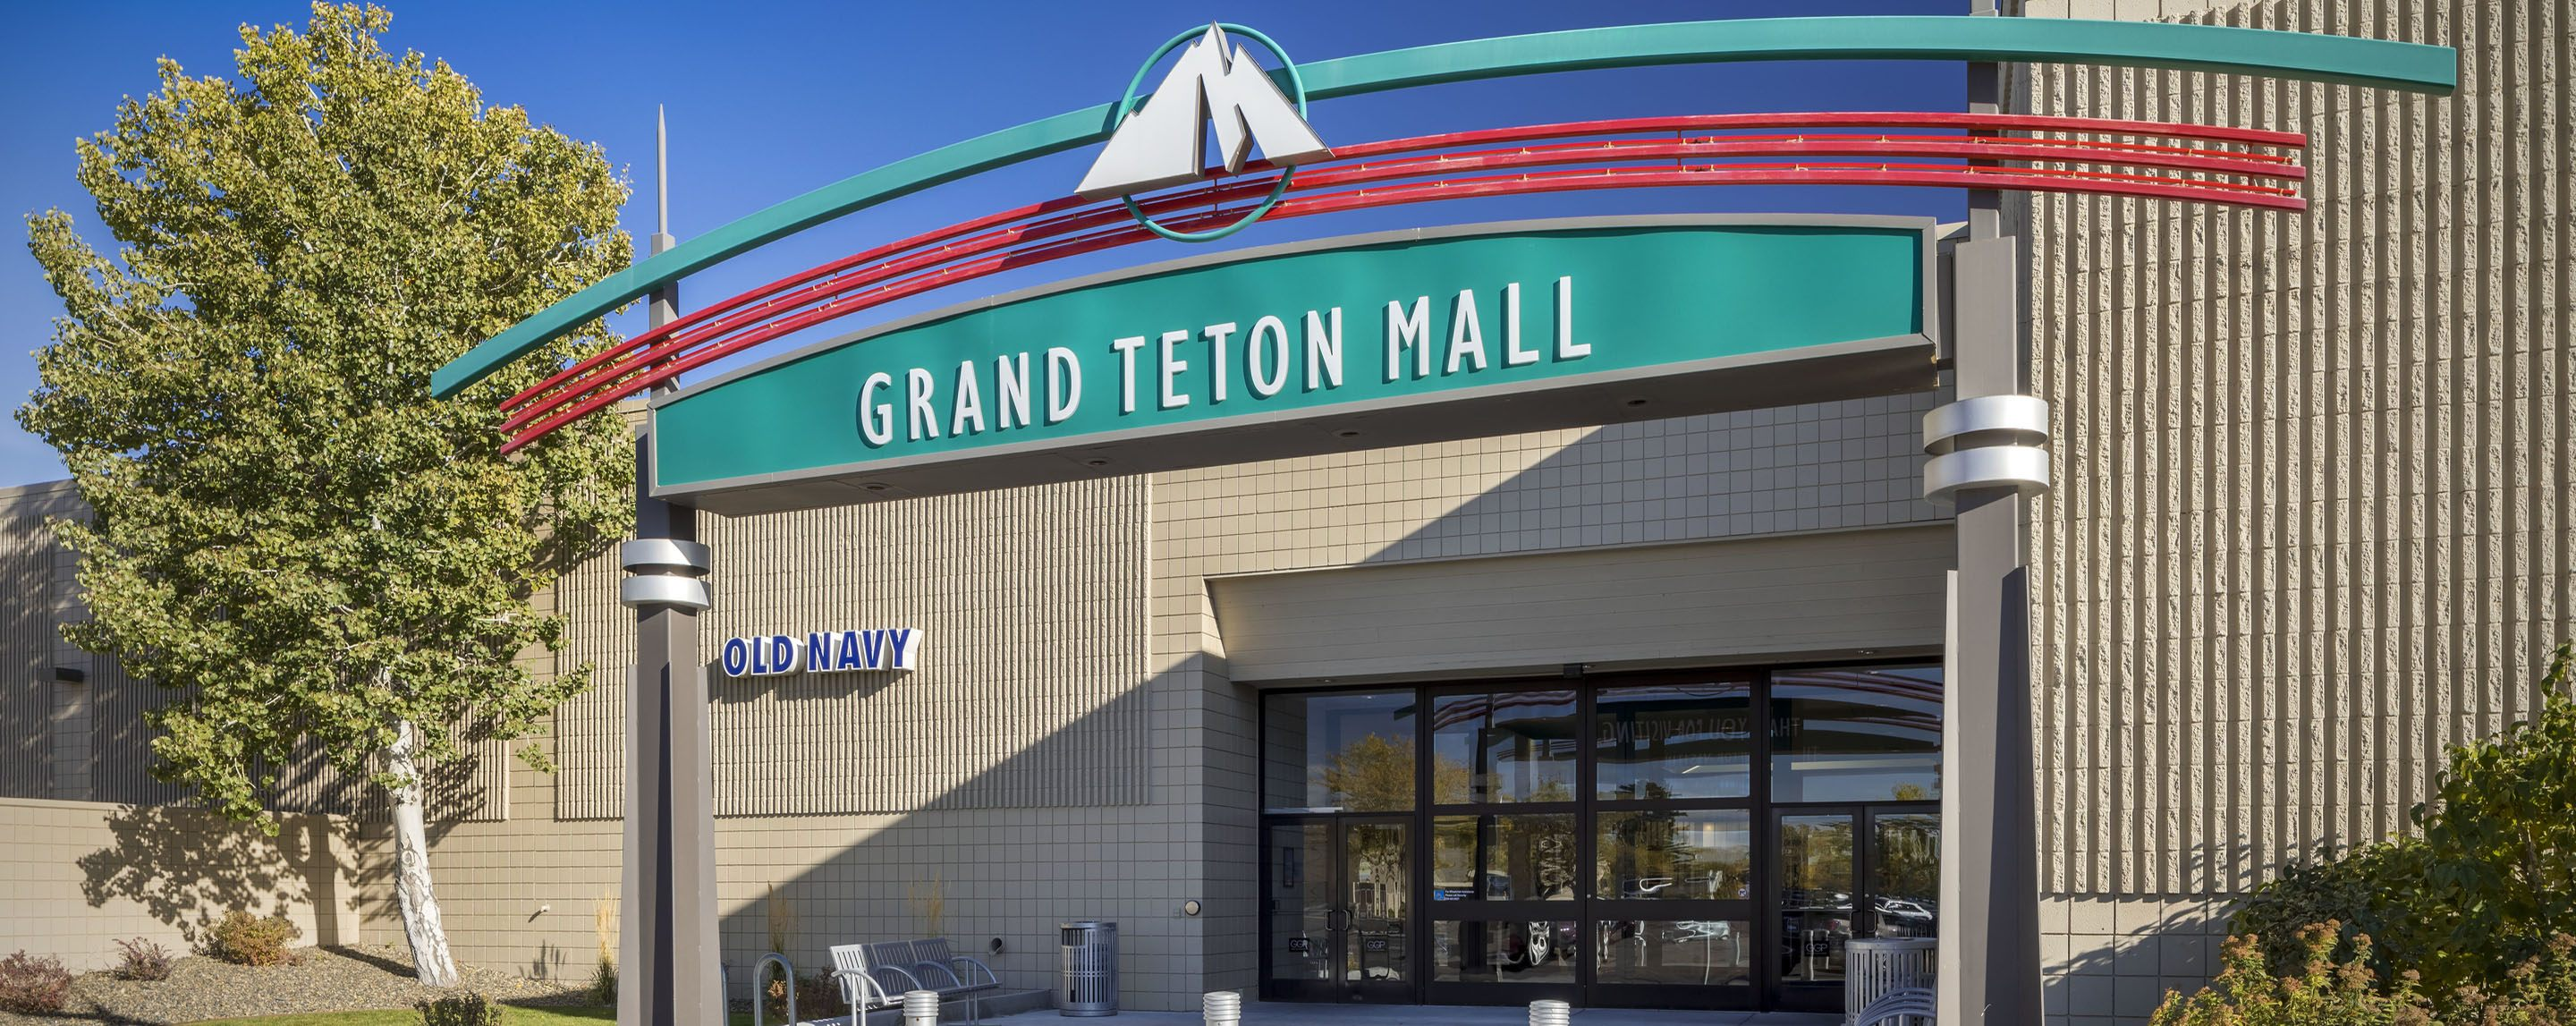 The blue sign for an Old Navy store can be seen on the building near the entrance for the Grand Teto